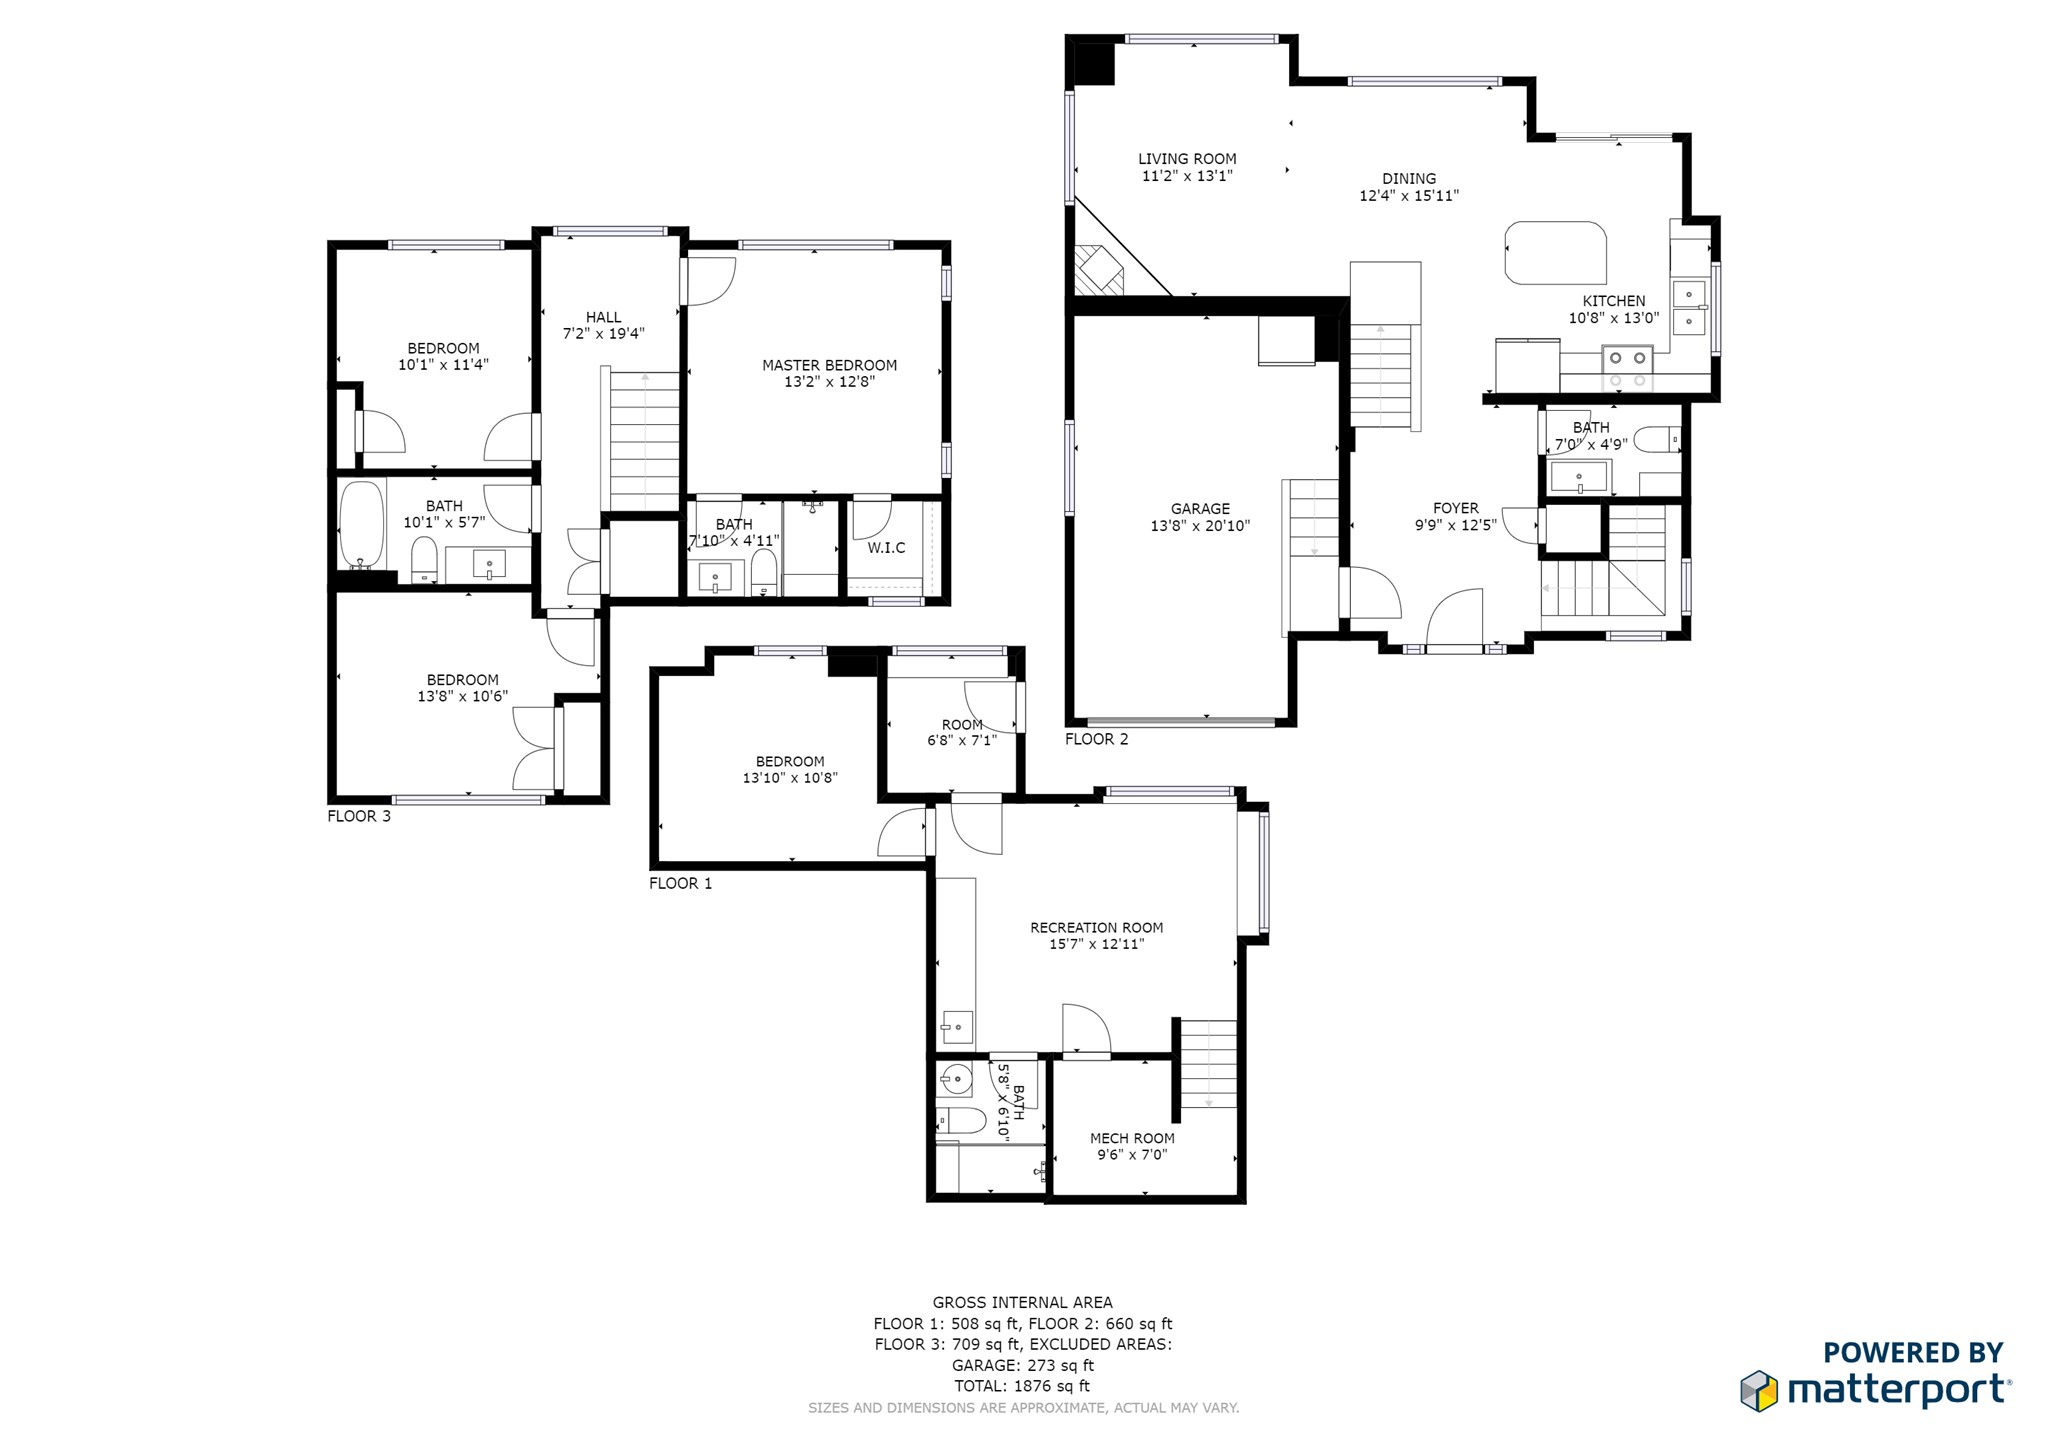 530-feathertop-way-big-white-bc-canada-floor-plan.jpg